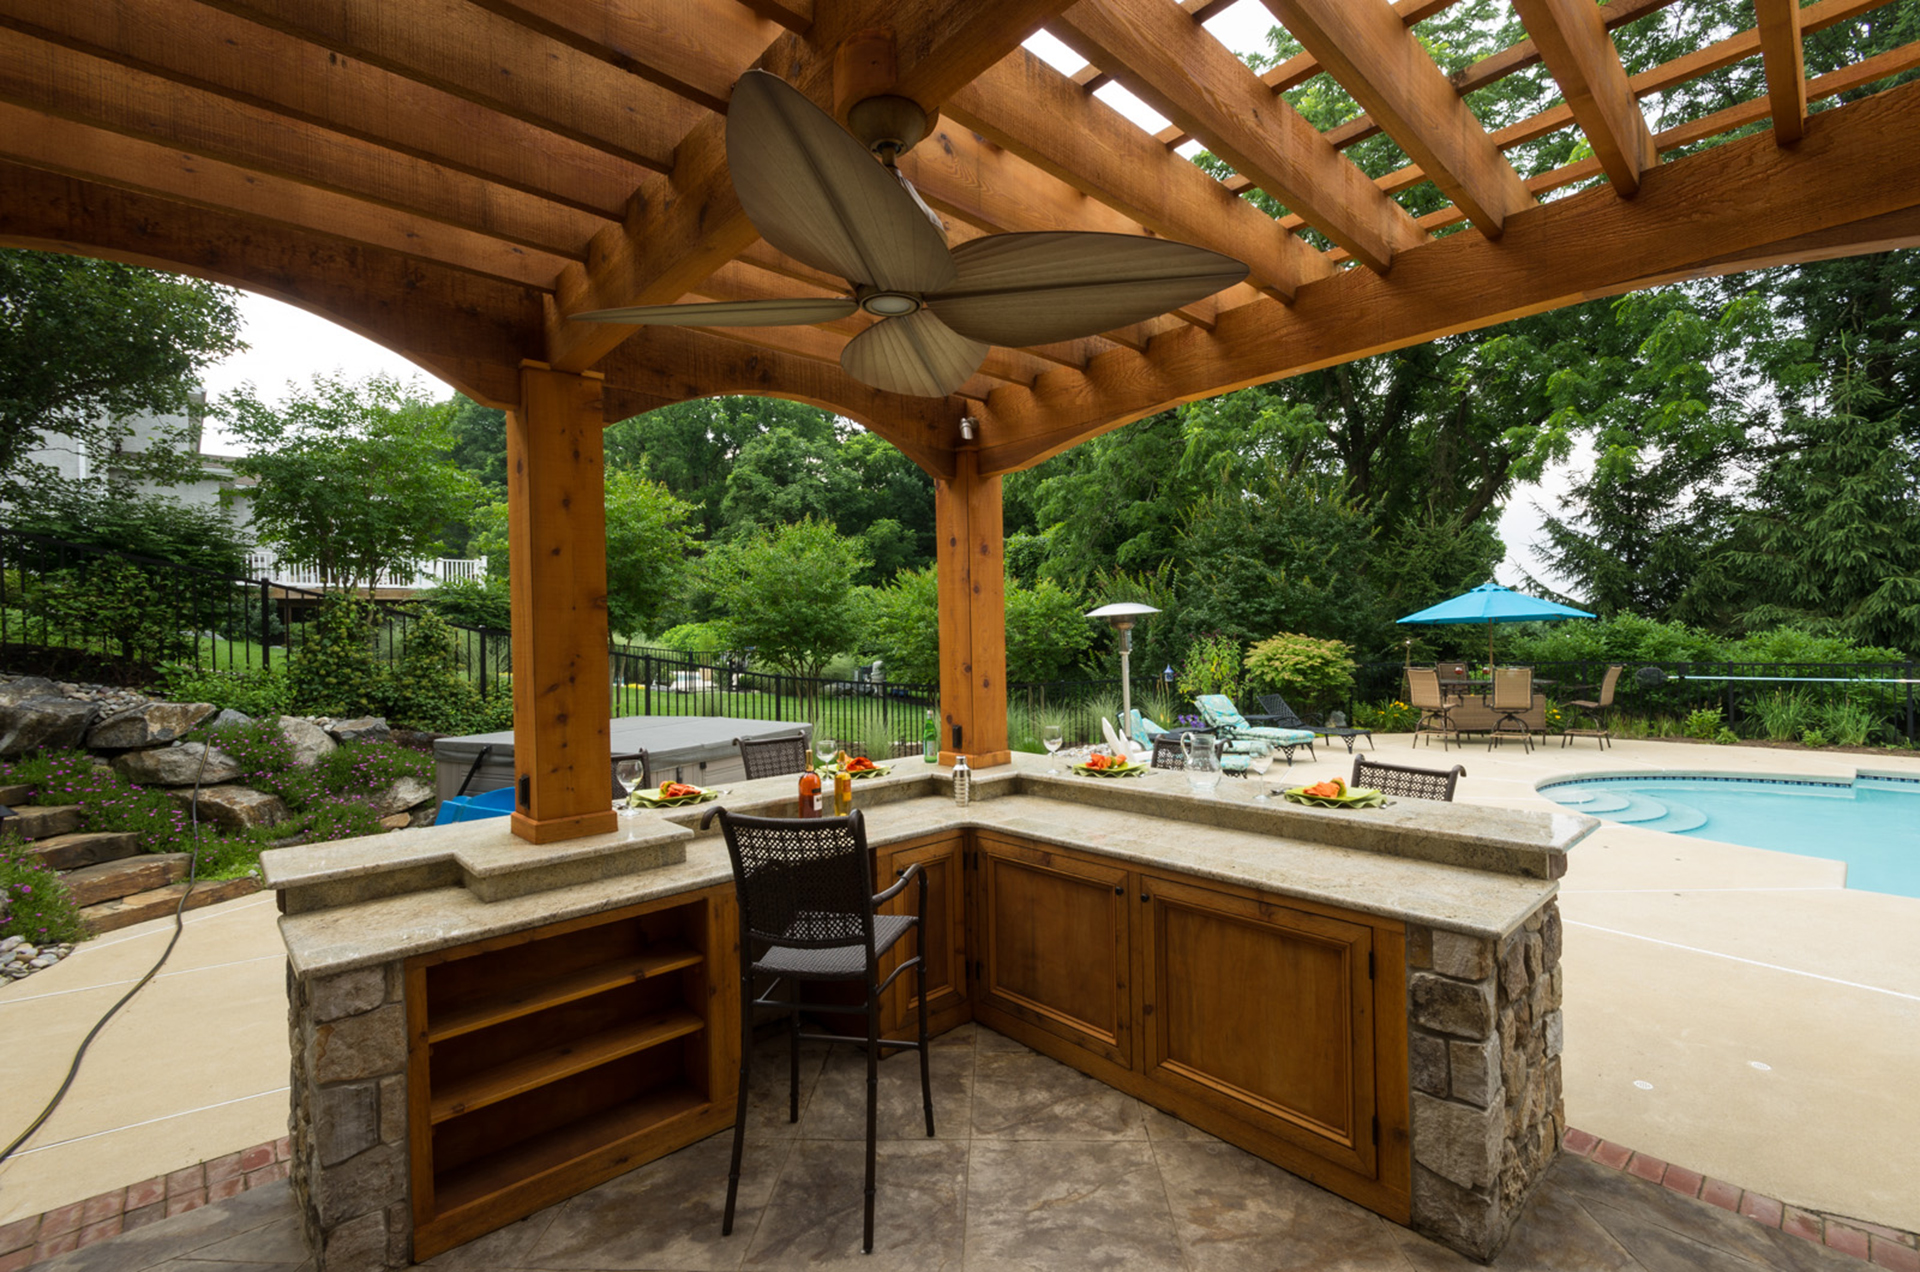 Marini After_kennett Square, PA 19348 - Outdoor Kitchen by DiSabatino Landscaping & Esposito Masonry